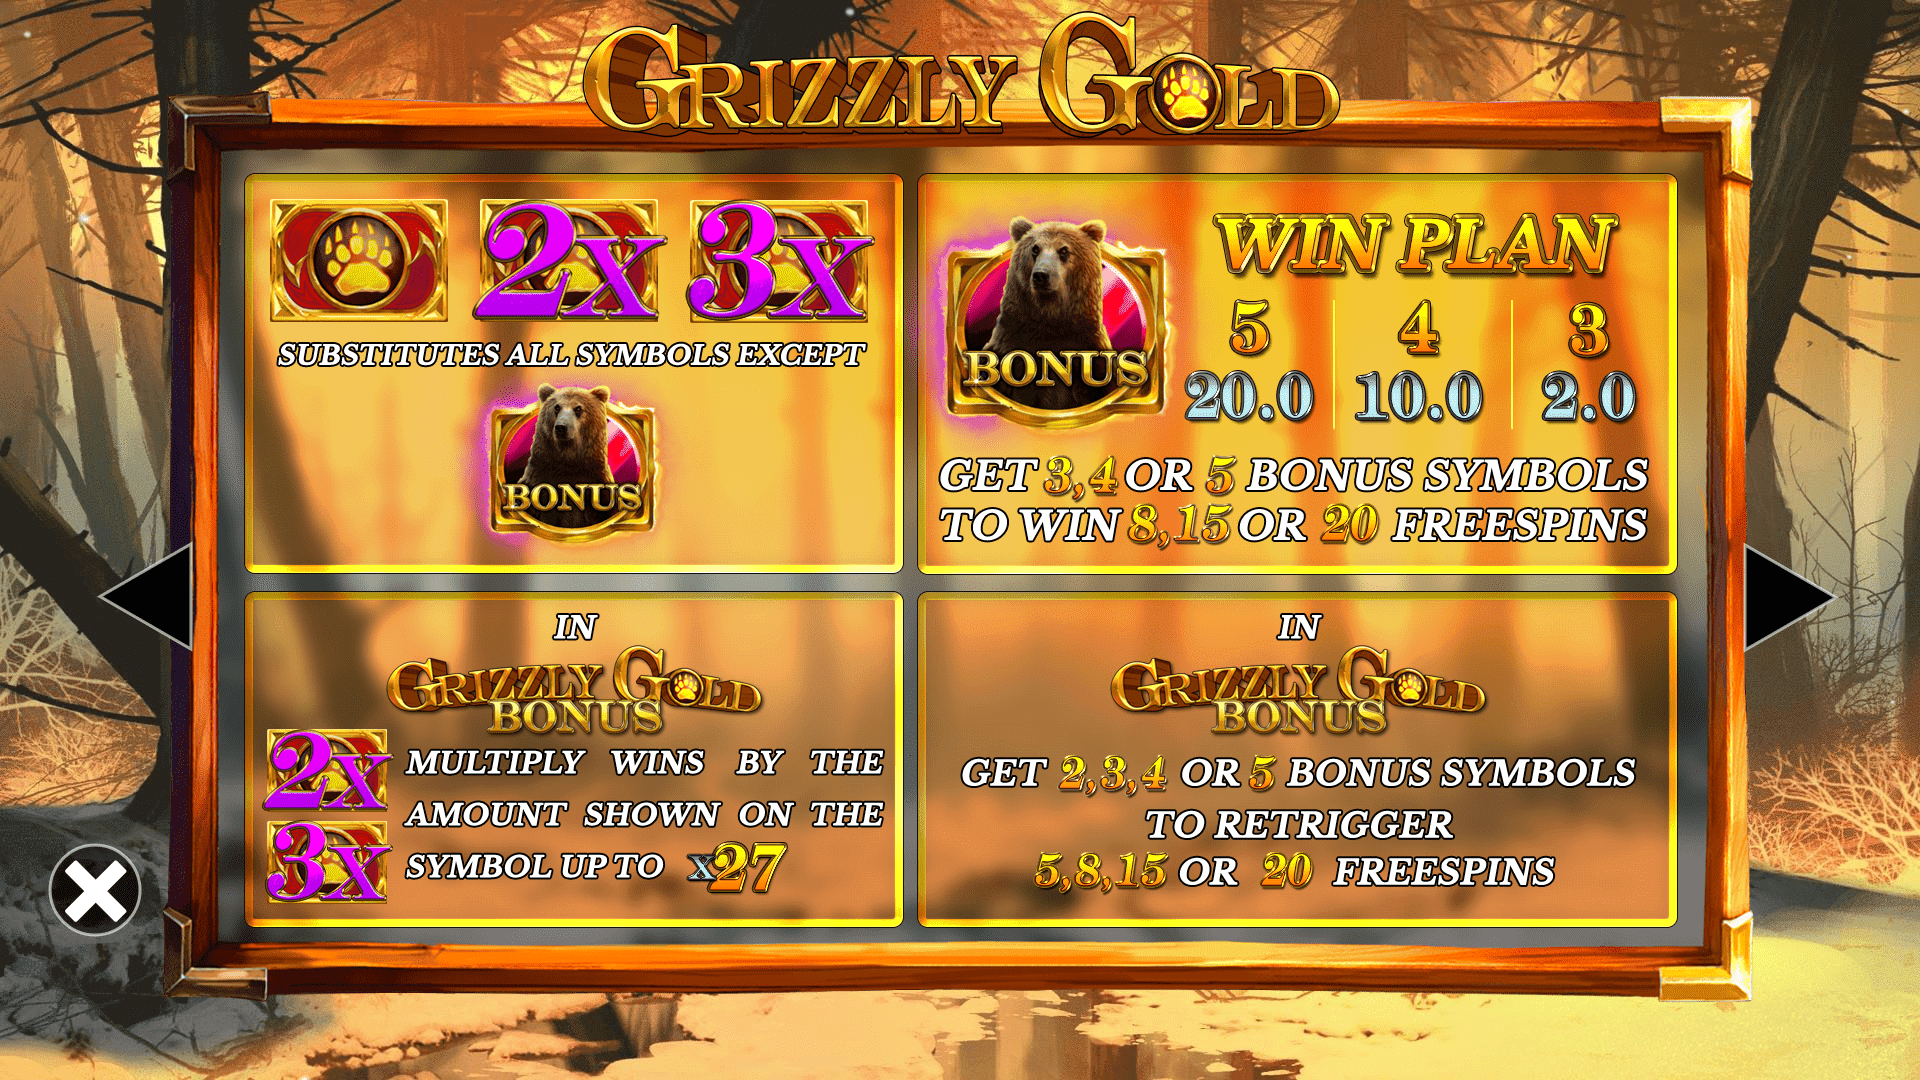 Grizzly Gold free spins